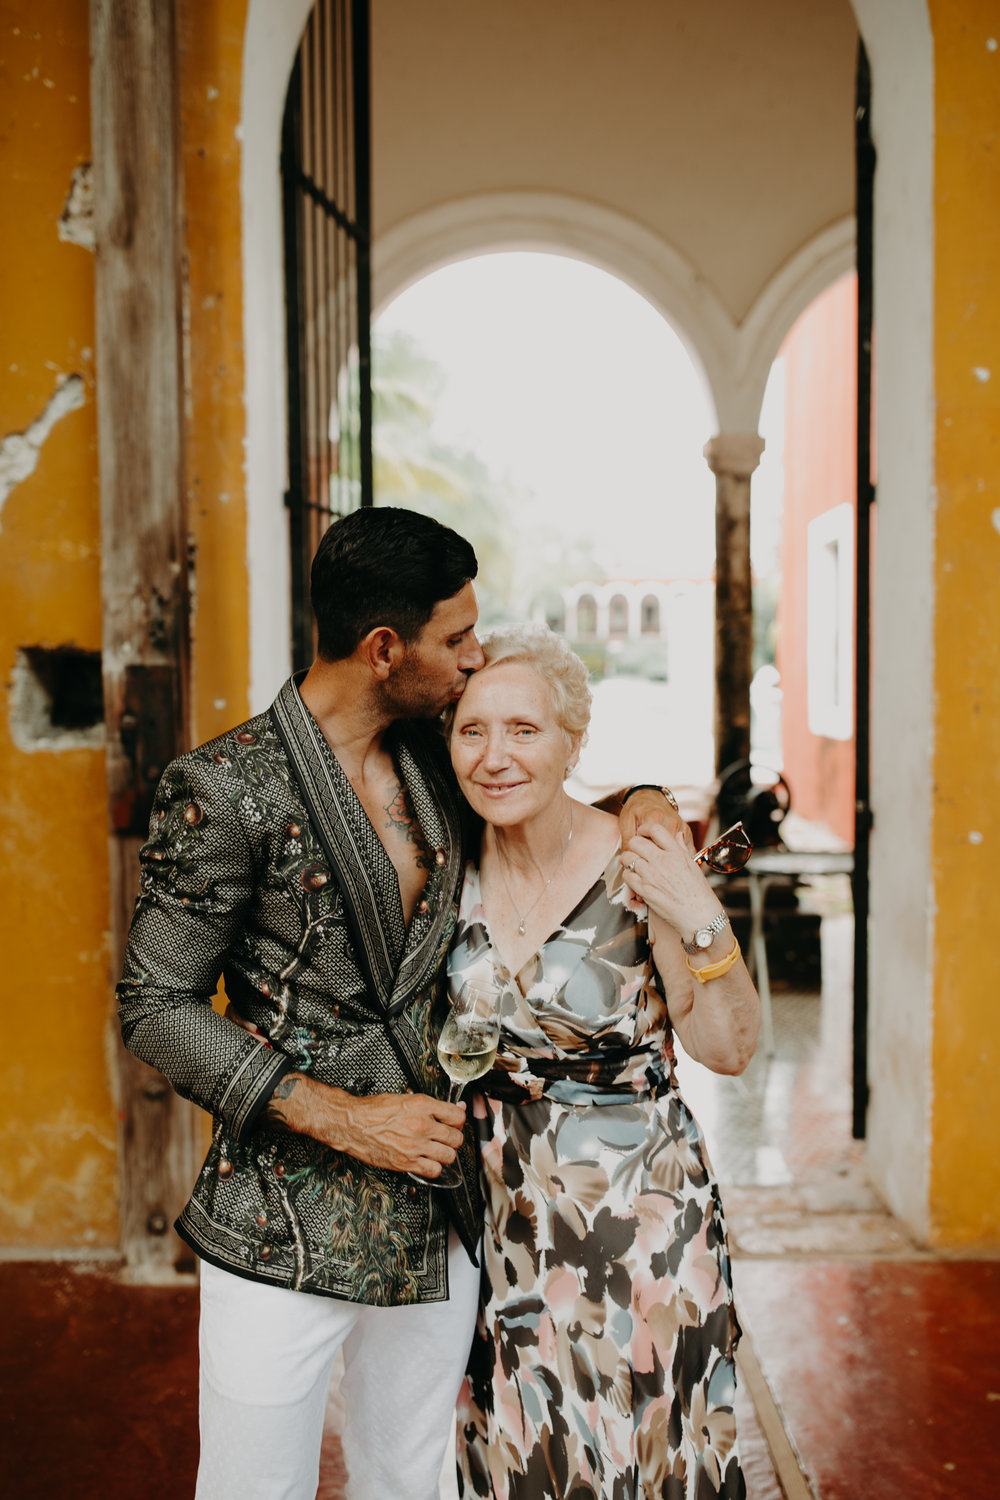 Hacienda Temozon Yucatan Mexico Wedding | Ida & Peter Emily Magers Photography-166.jpg